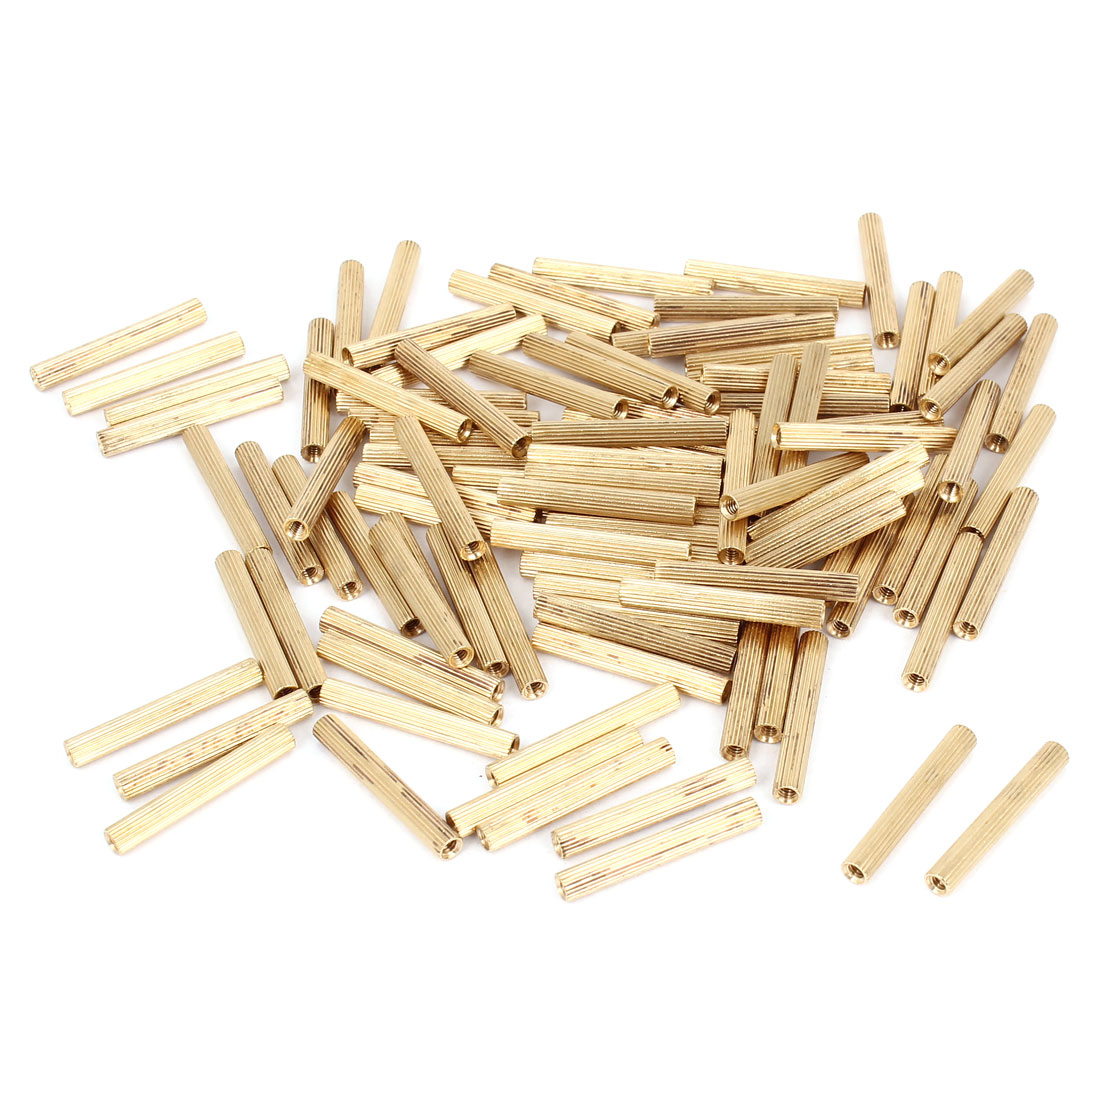 100 Pcs Female Threaded Pillars Brass Standoff Spacer Gold Tone M2x22mm